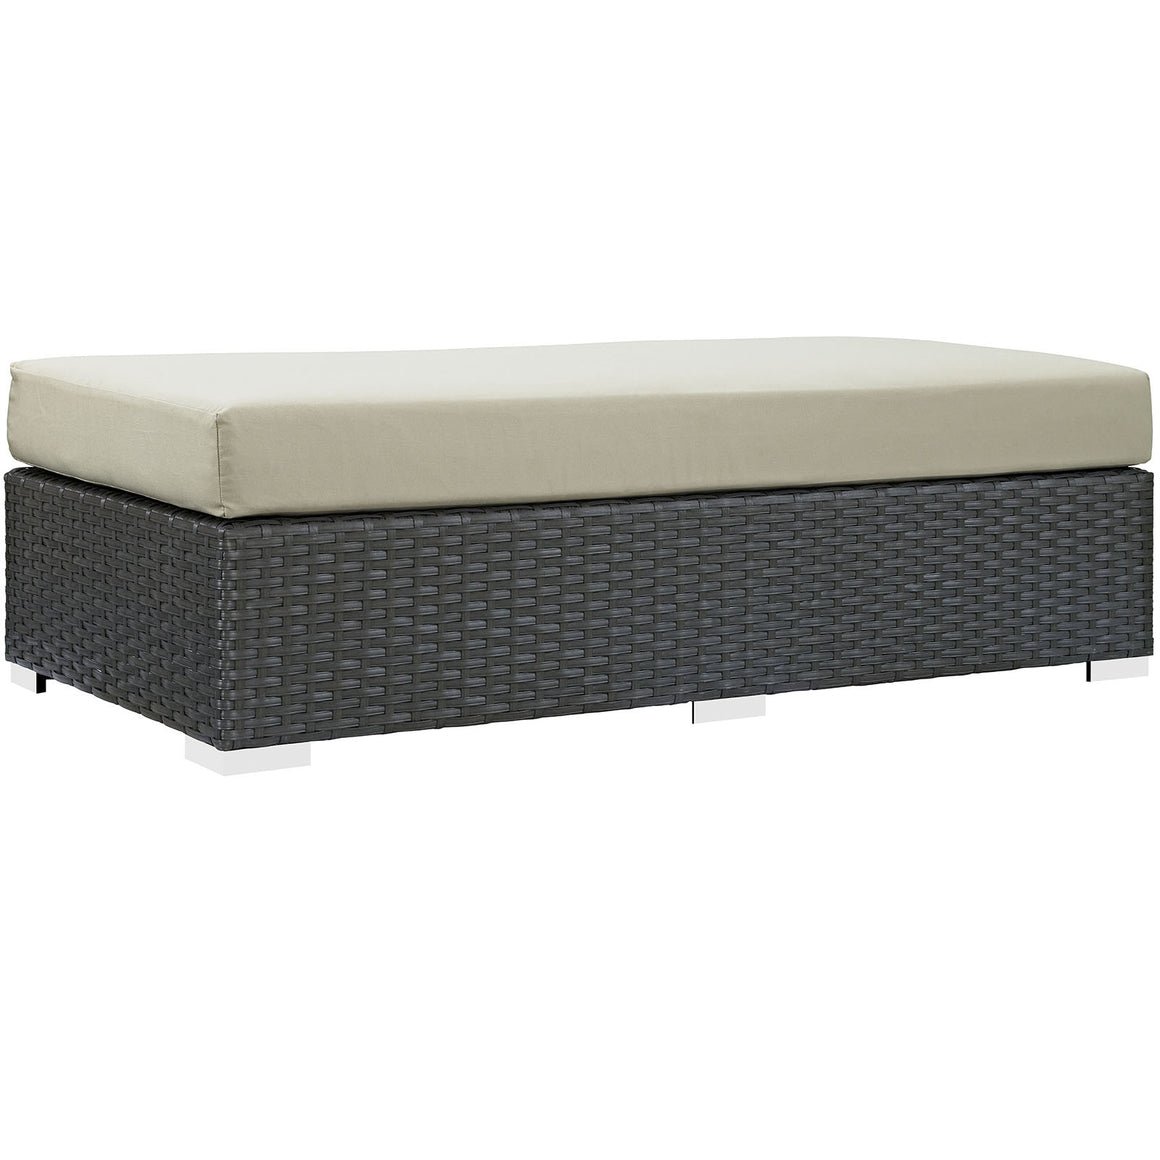 Sojourn Outdoor Patio Fabric Rectangle Ottoman